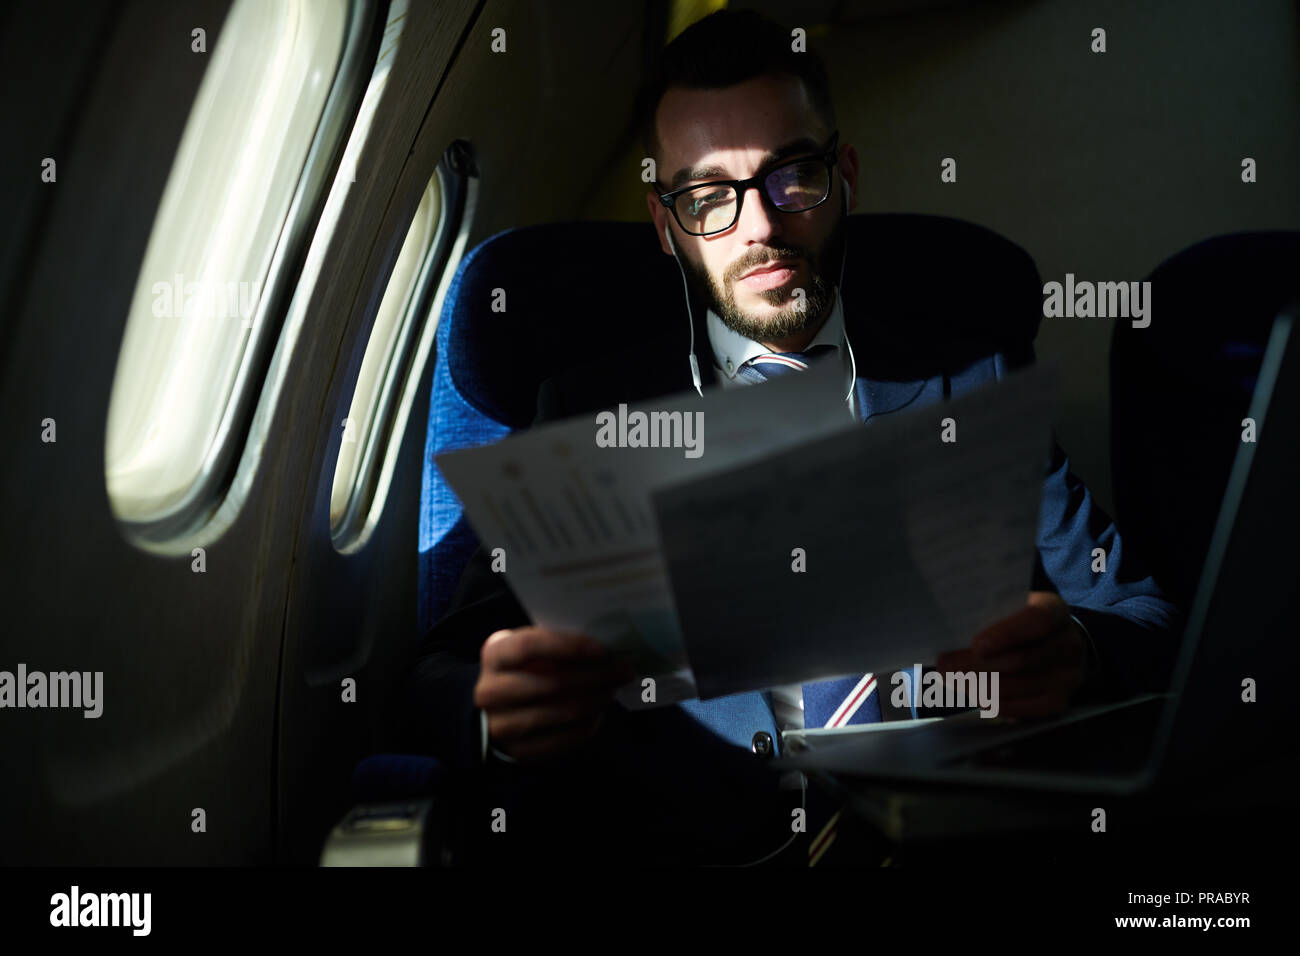 Handsome Businessman in Private Jet - Stock Image